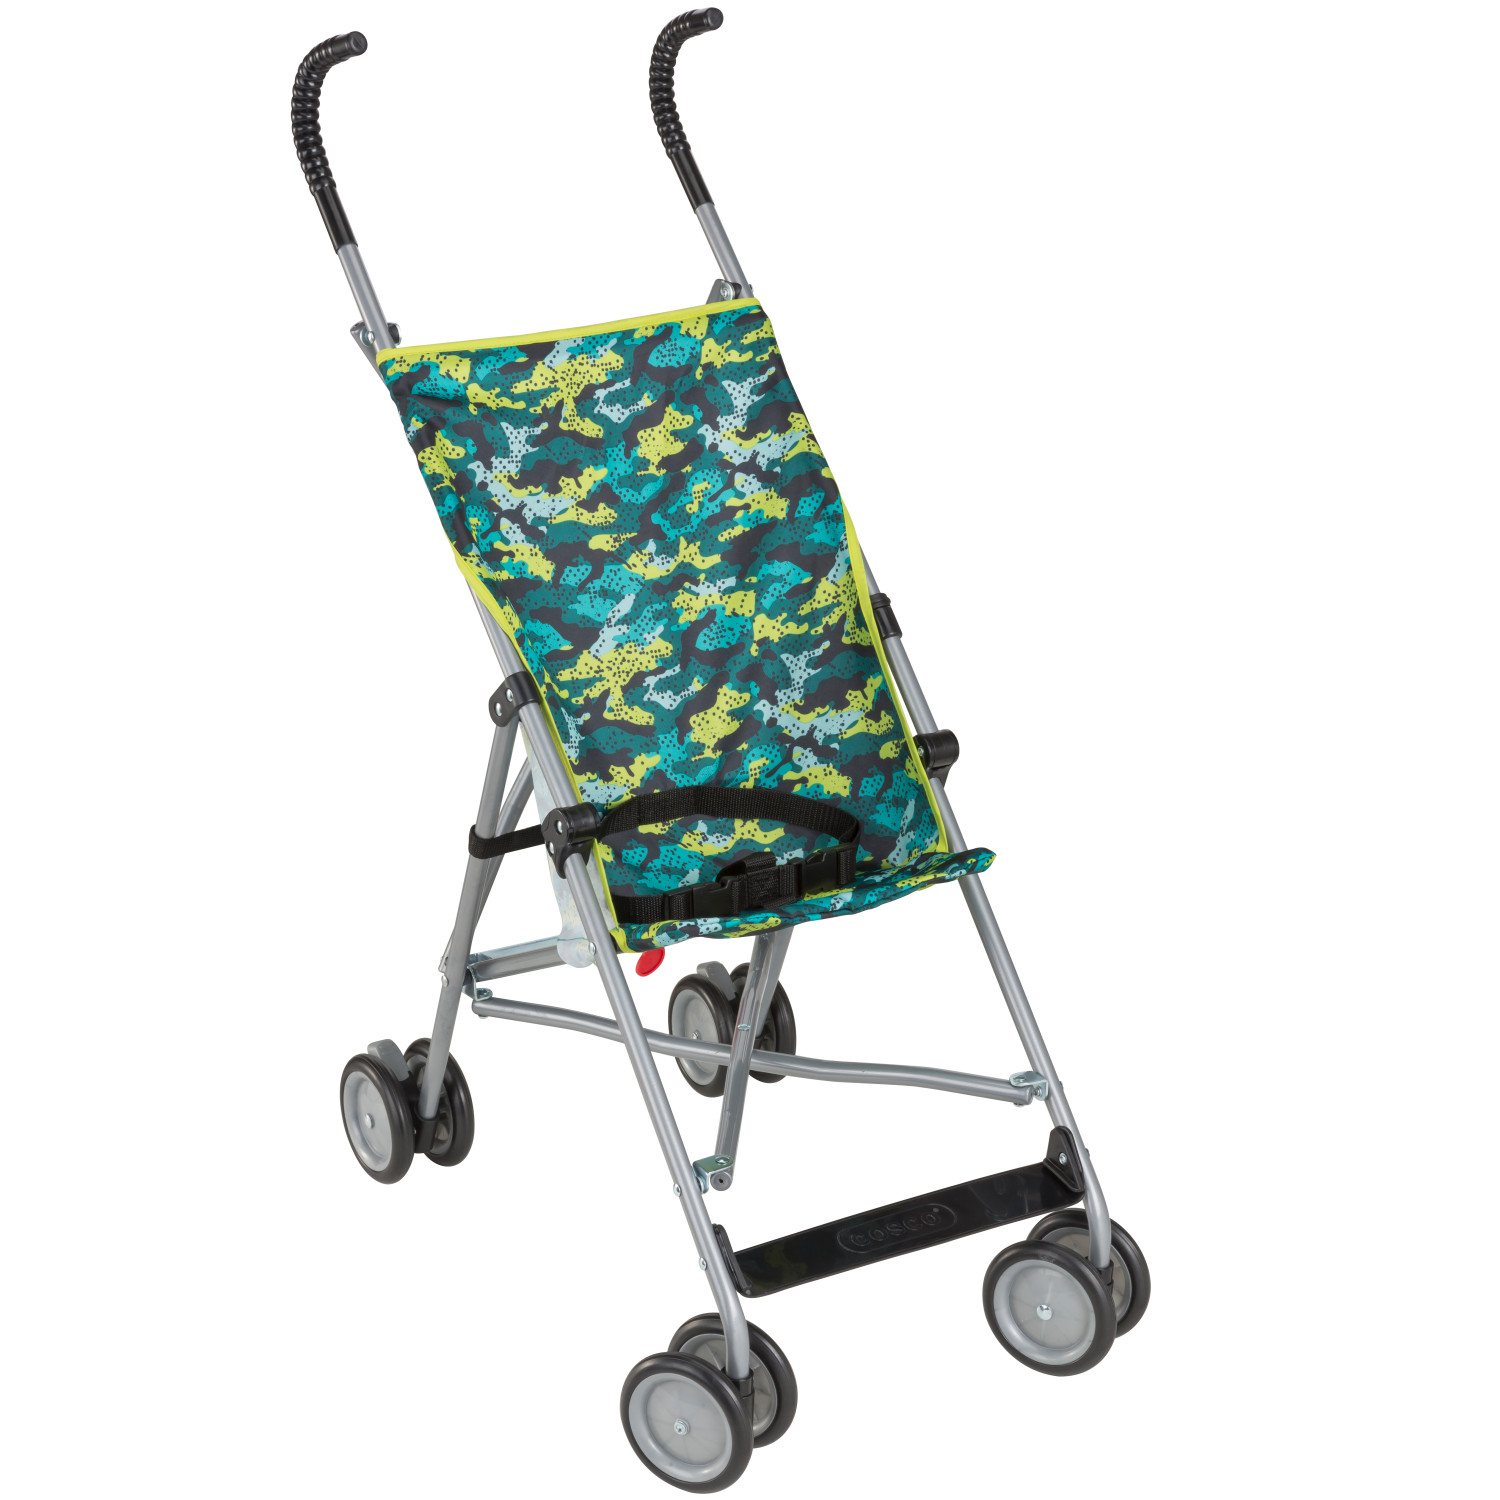 Cosco Umbrella Stroller Ebay